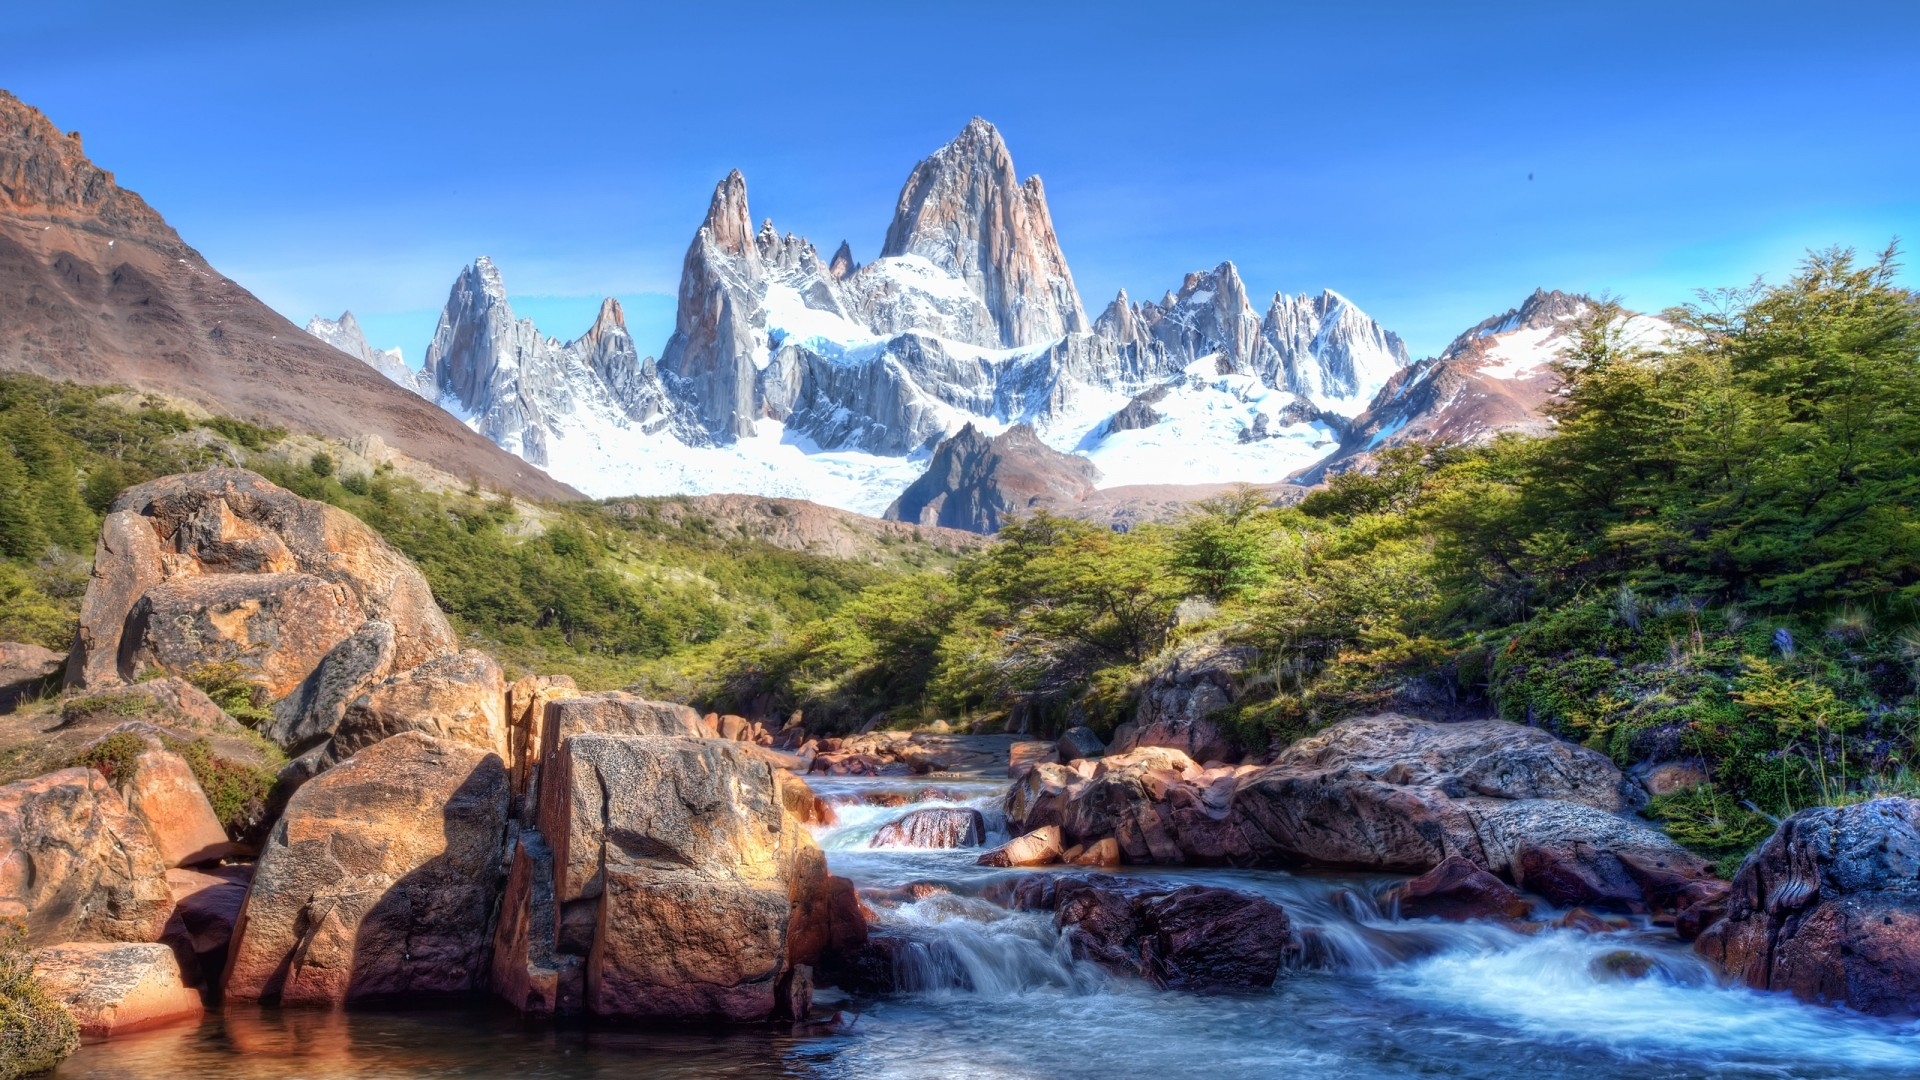 1080P HD Wallpapers Landscape | … landscape > Mountains and River  wallpaper background hd